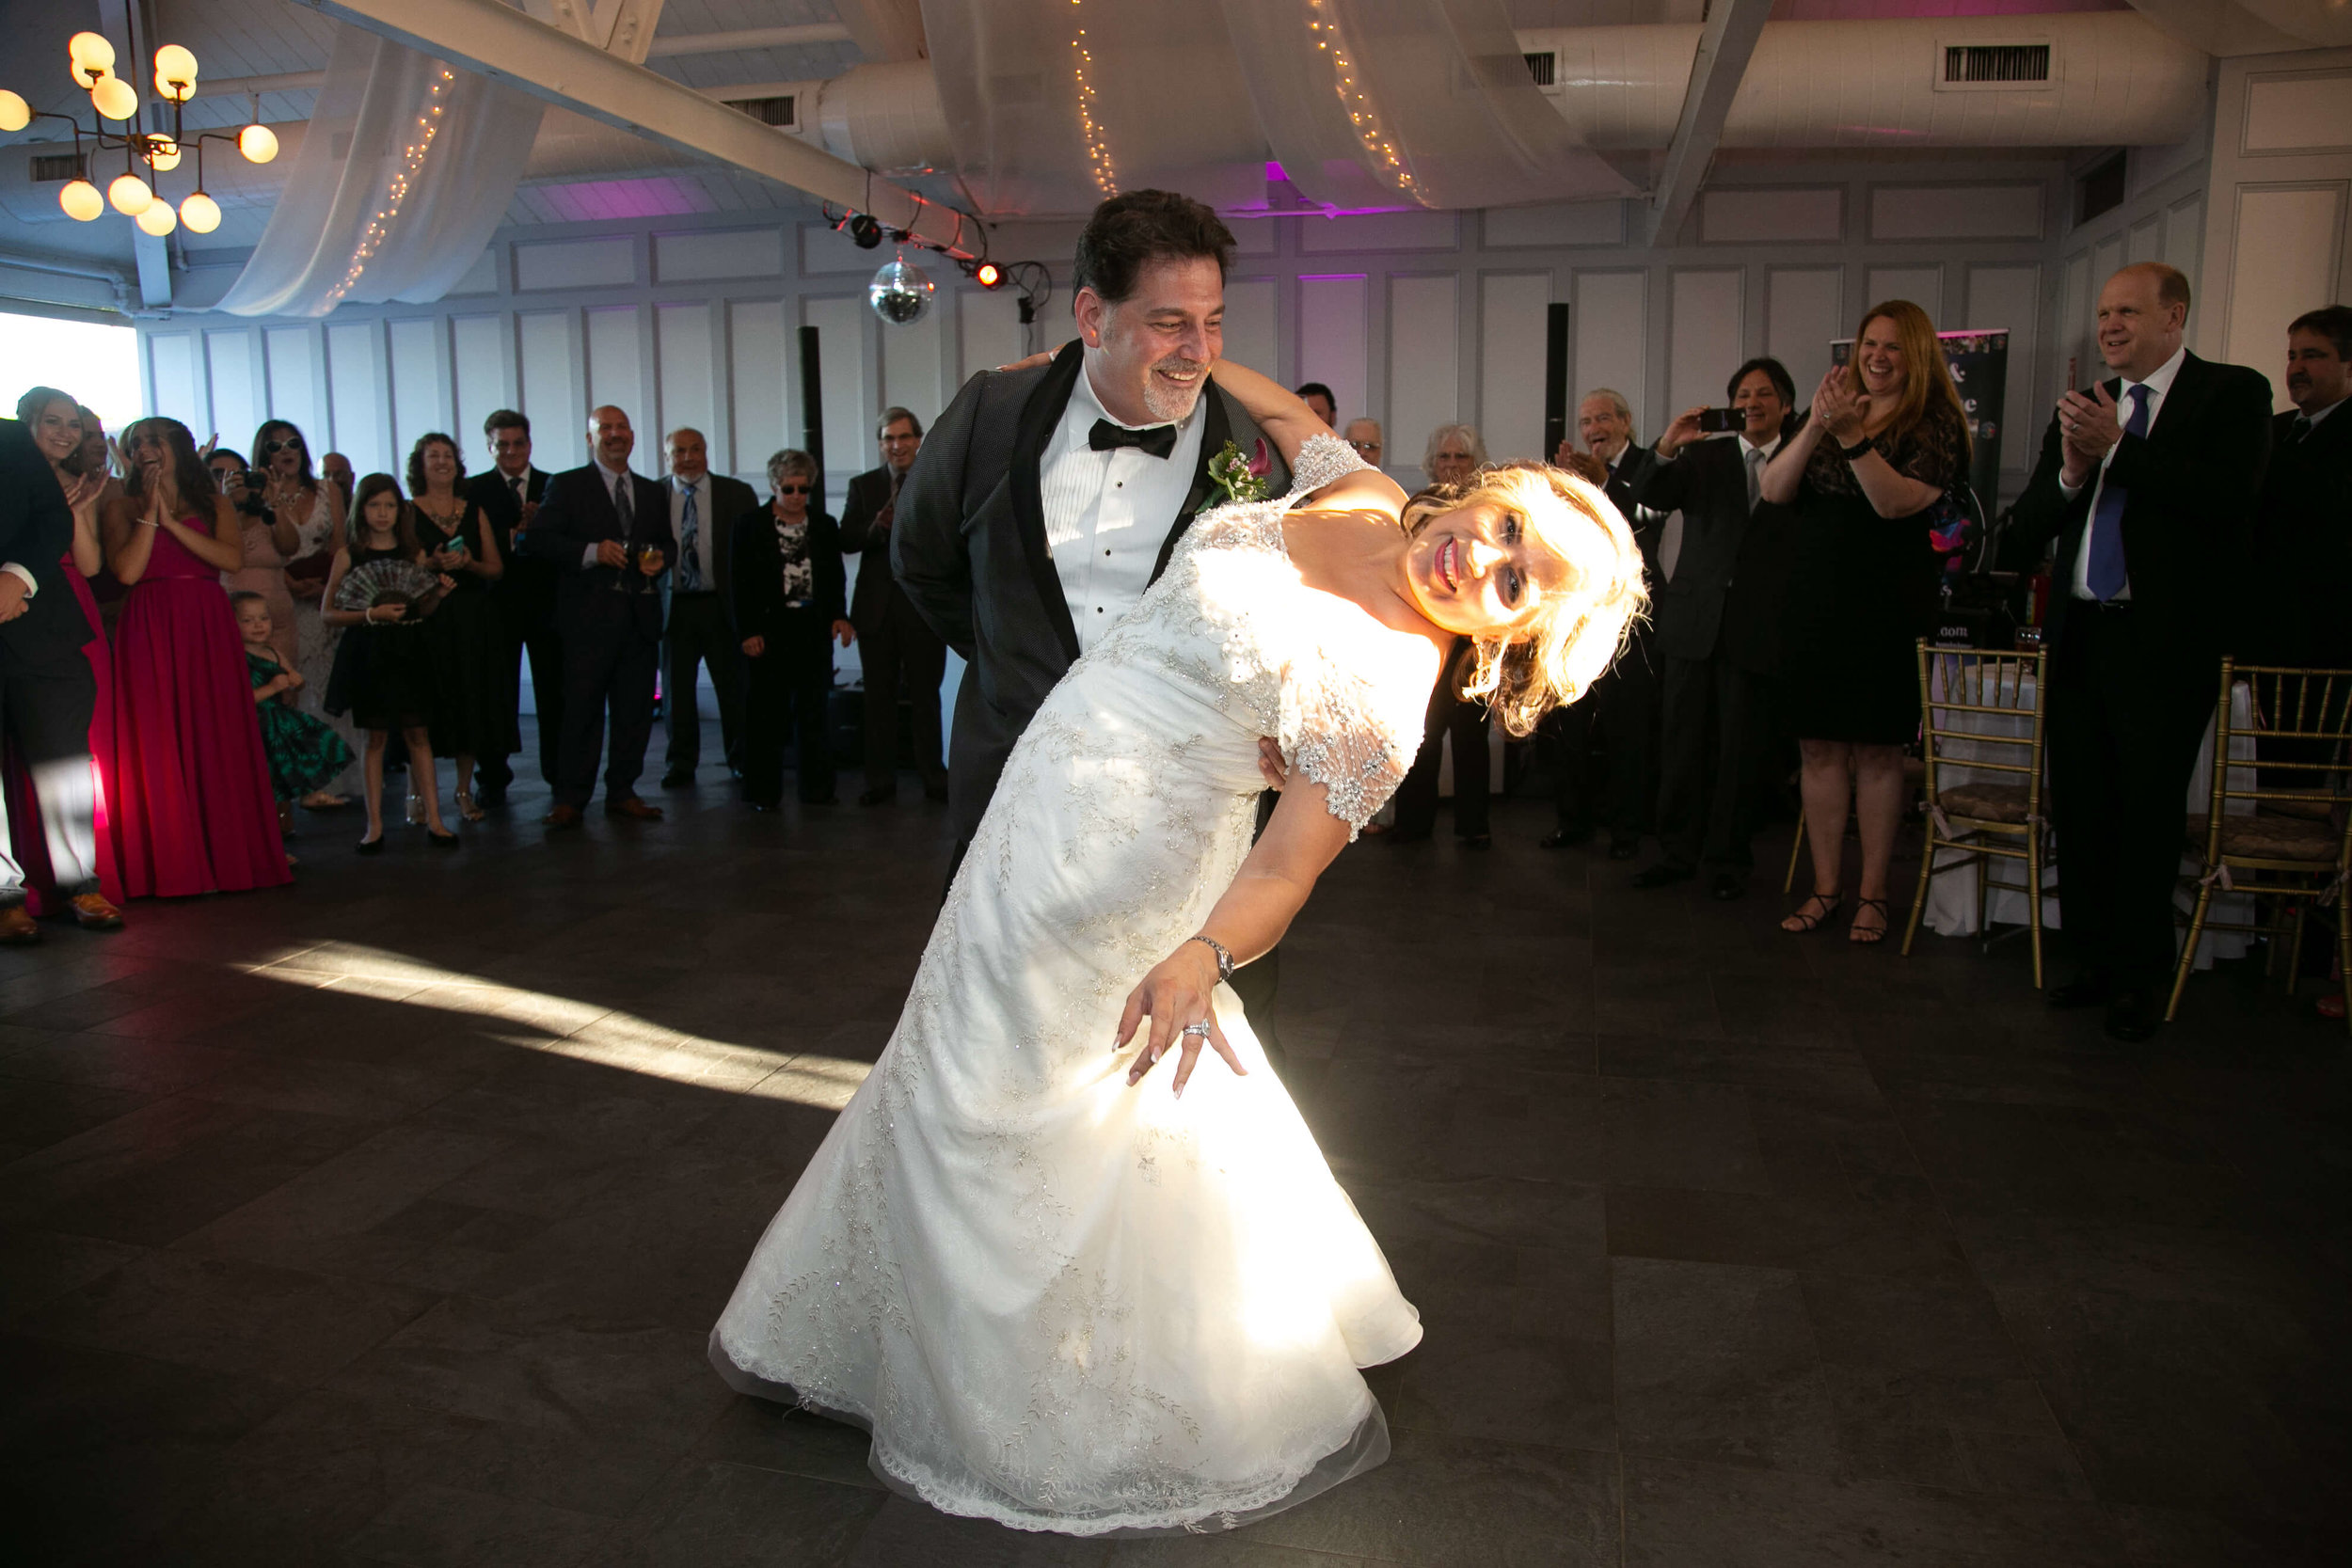 Anita and Robert Wedding - First Dance choreography by Quick Quick Slow Ballroom